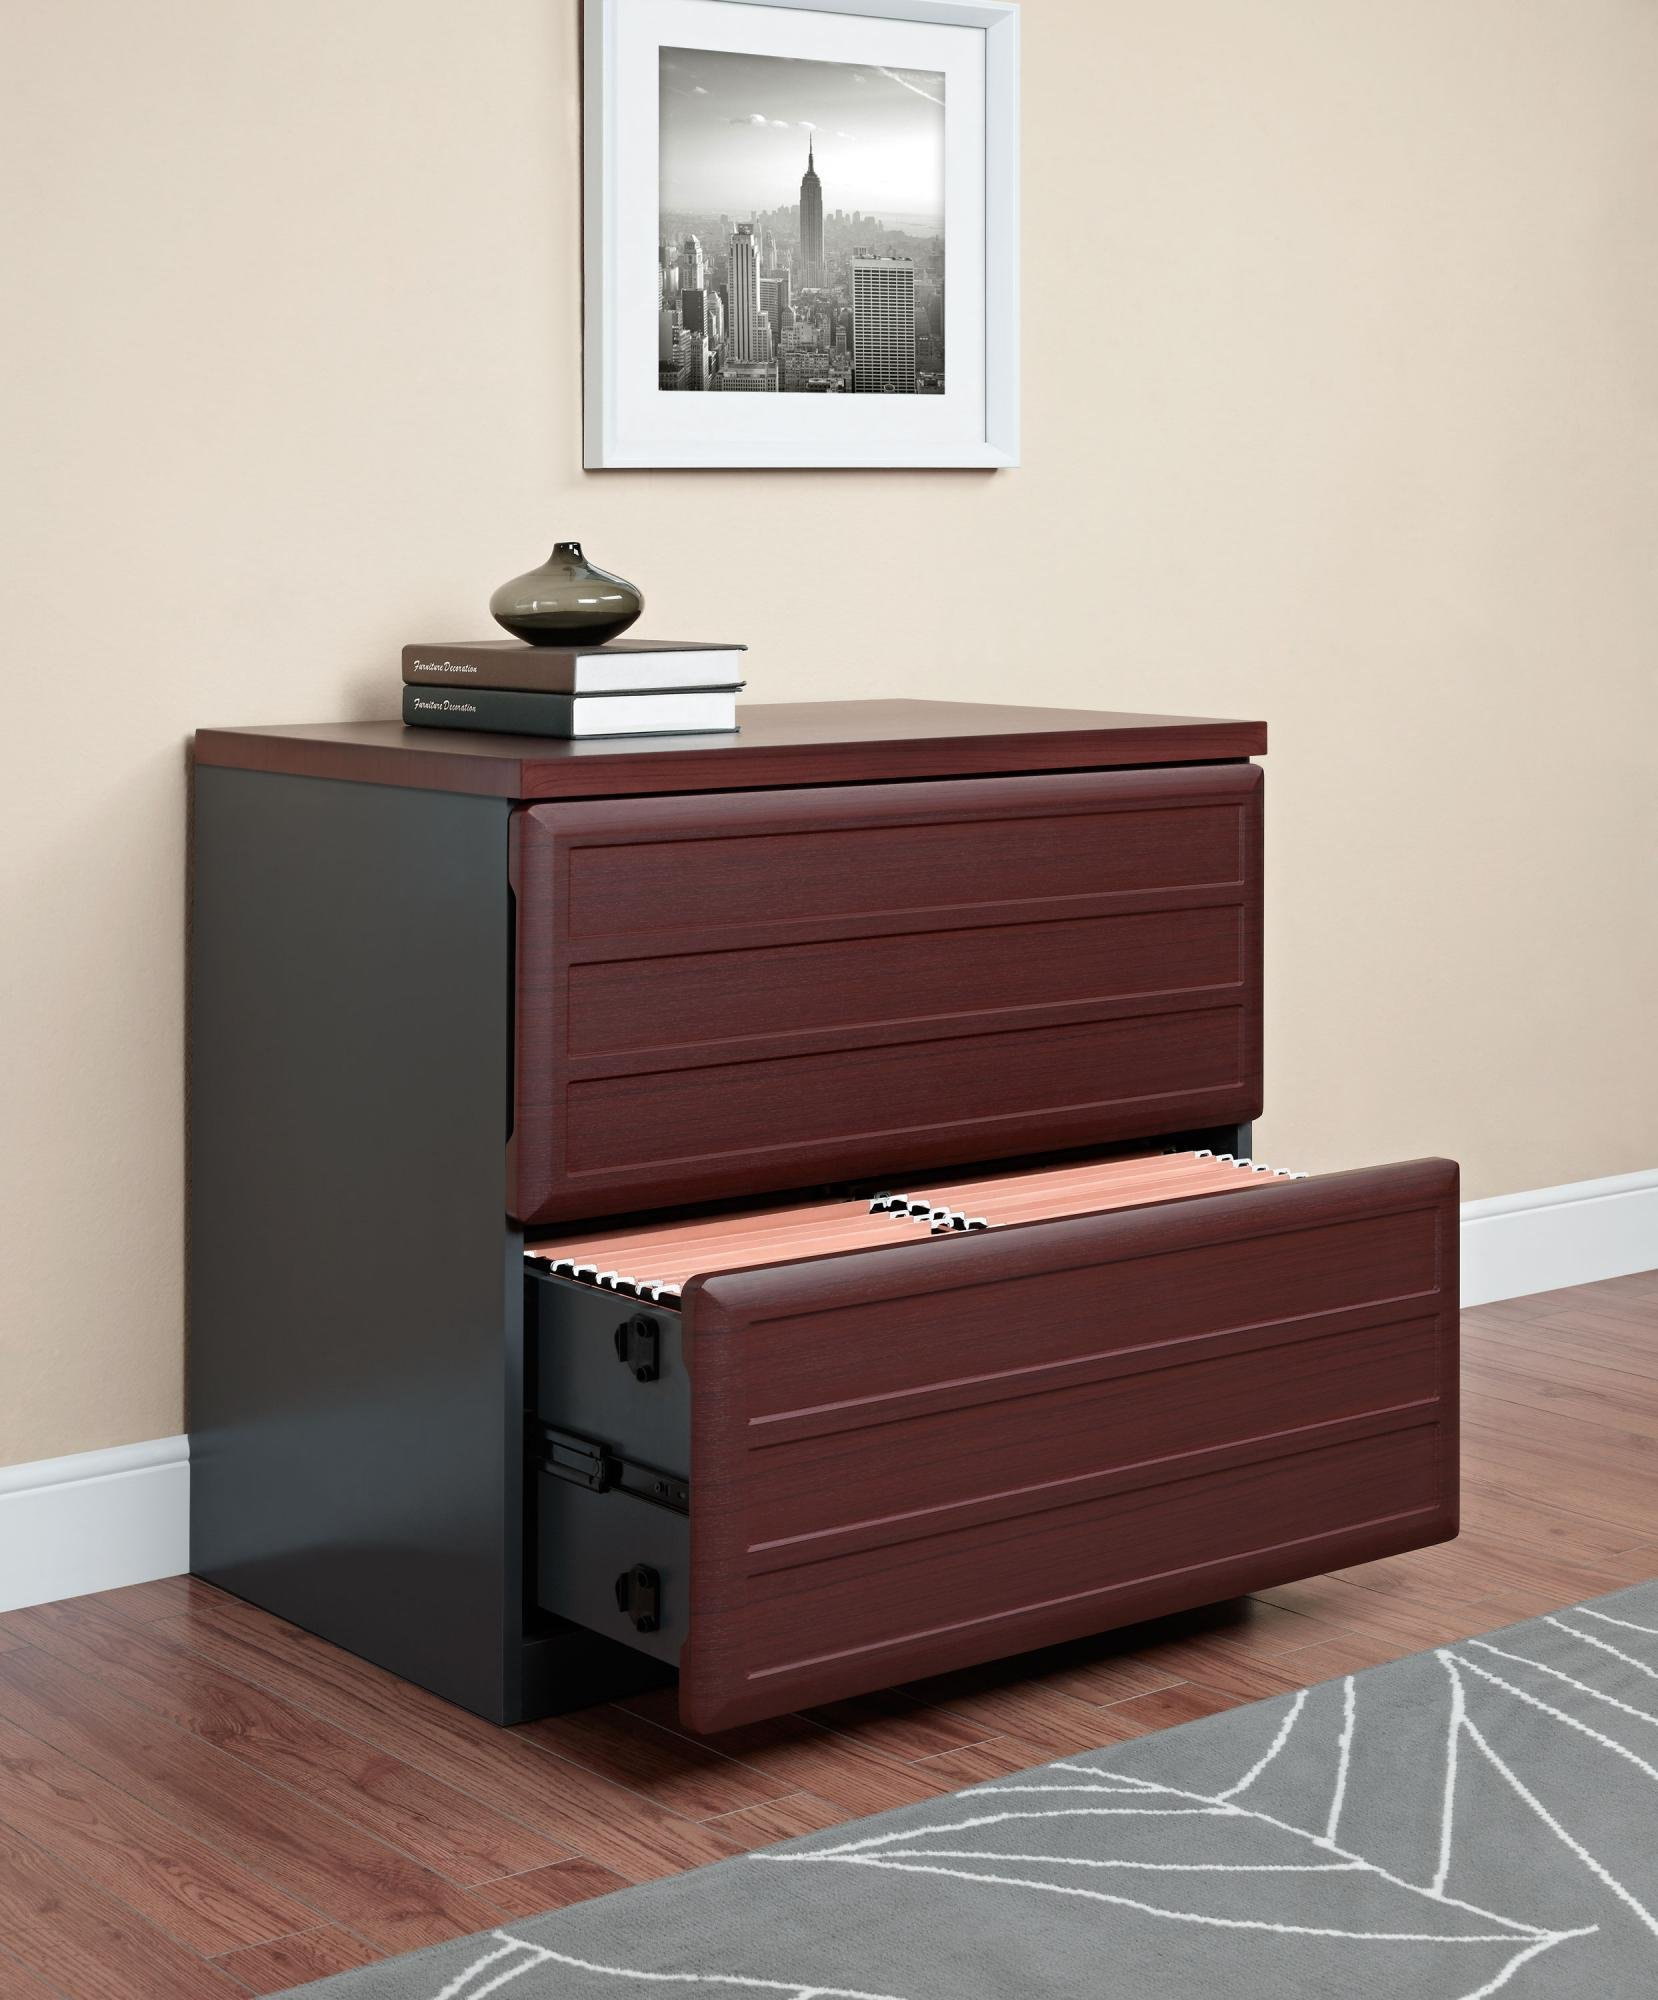 Ameriwood Home Pursuit Lateral File Cabinet, Cherry by Altra Furniture (Image #4)